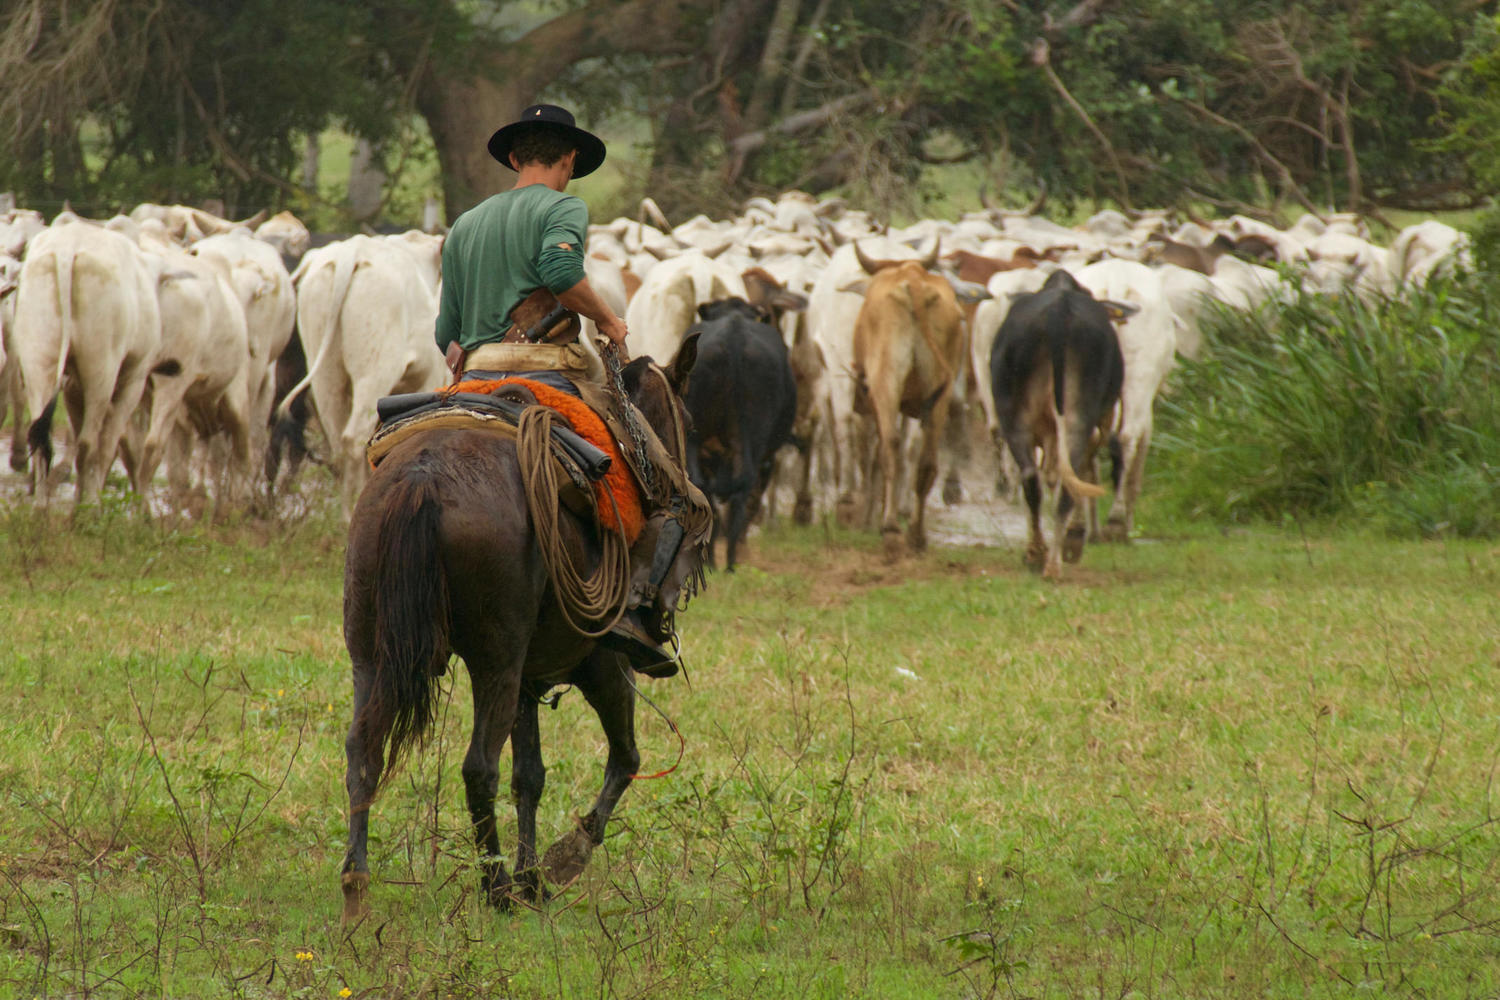 Cowboy on the way back to the ranch in the Pantanal